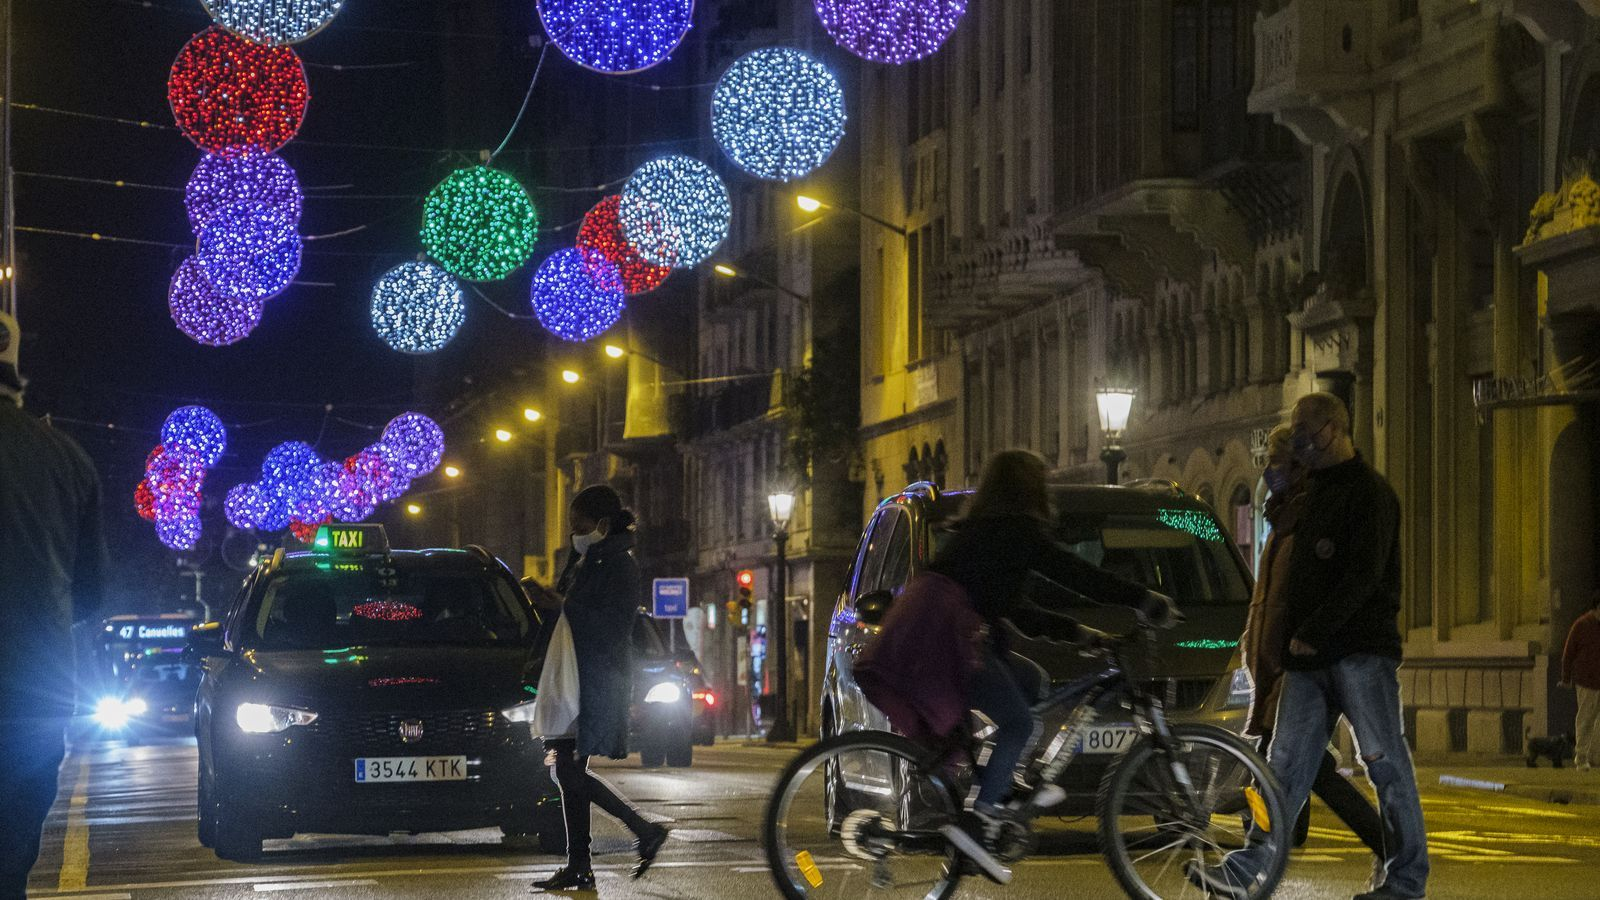 Green light for mobility throughout Catalonia during the Christmas holidays